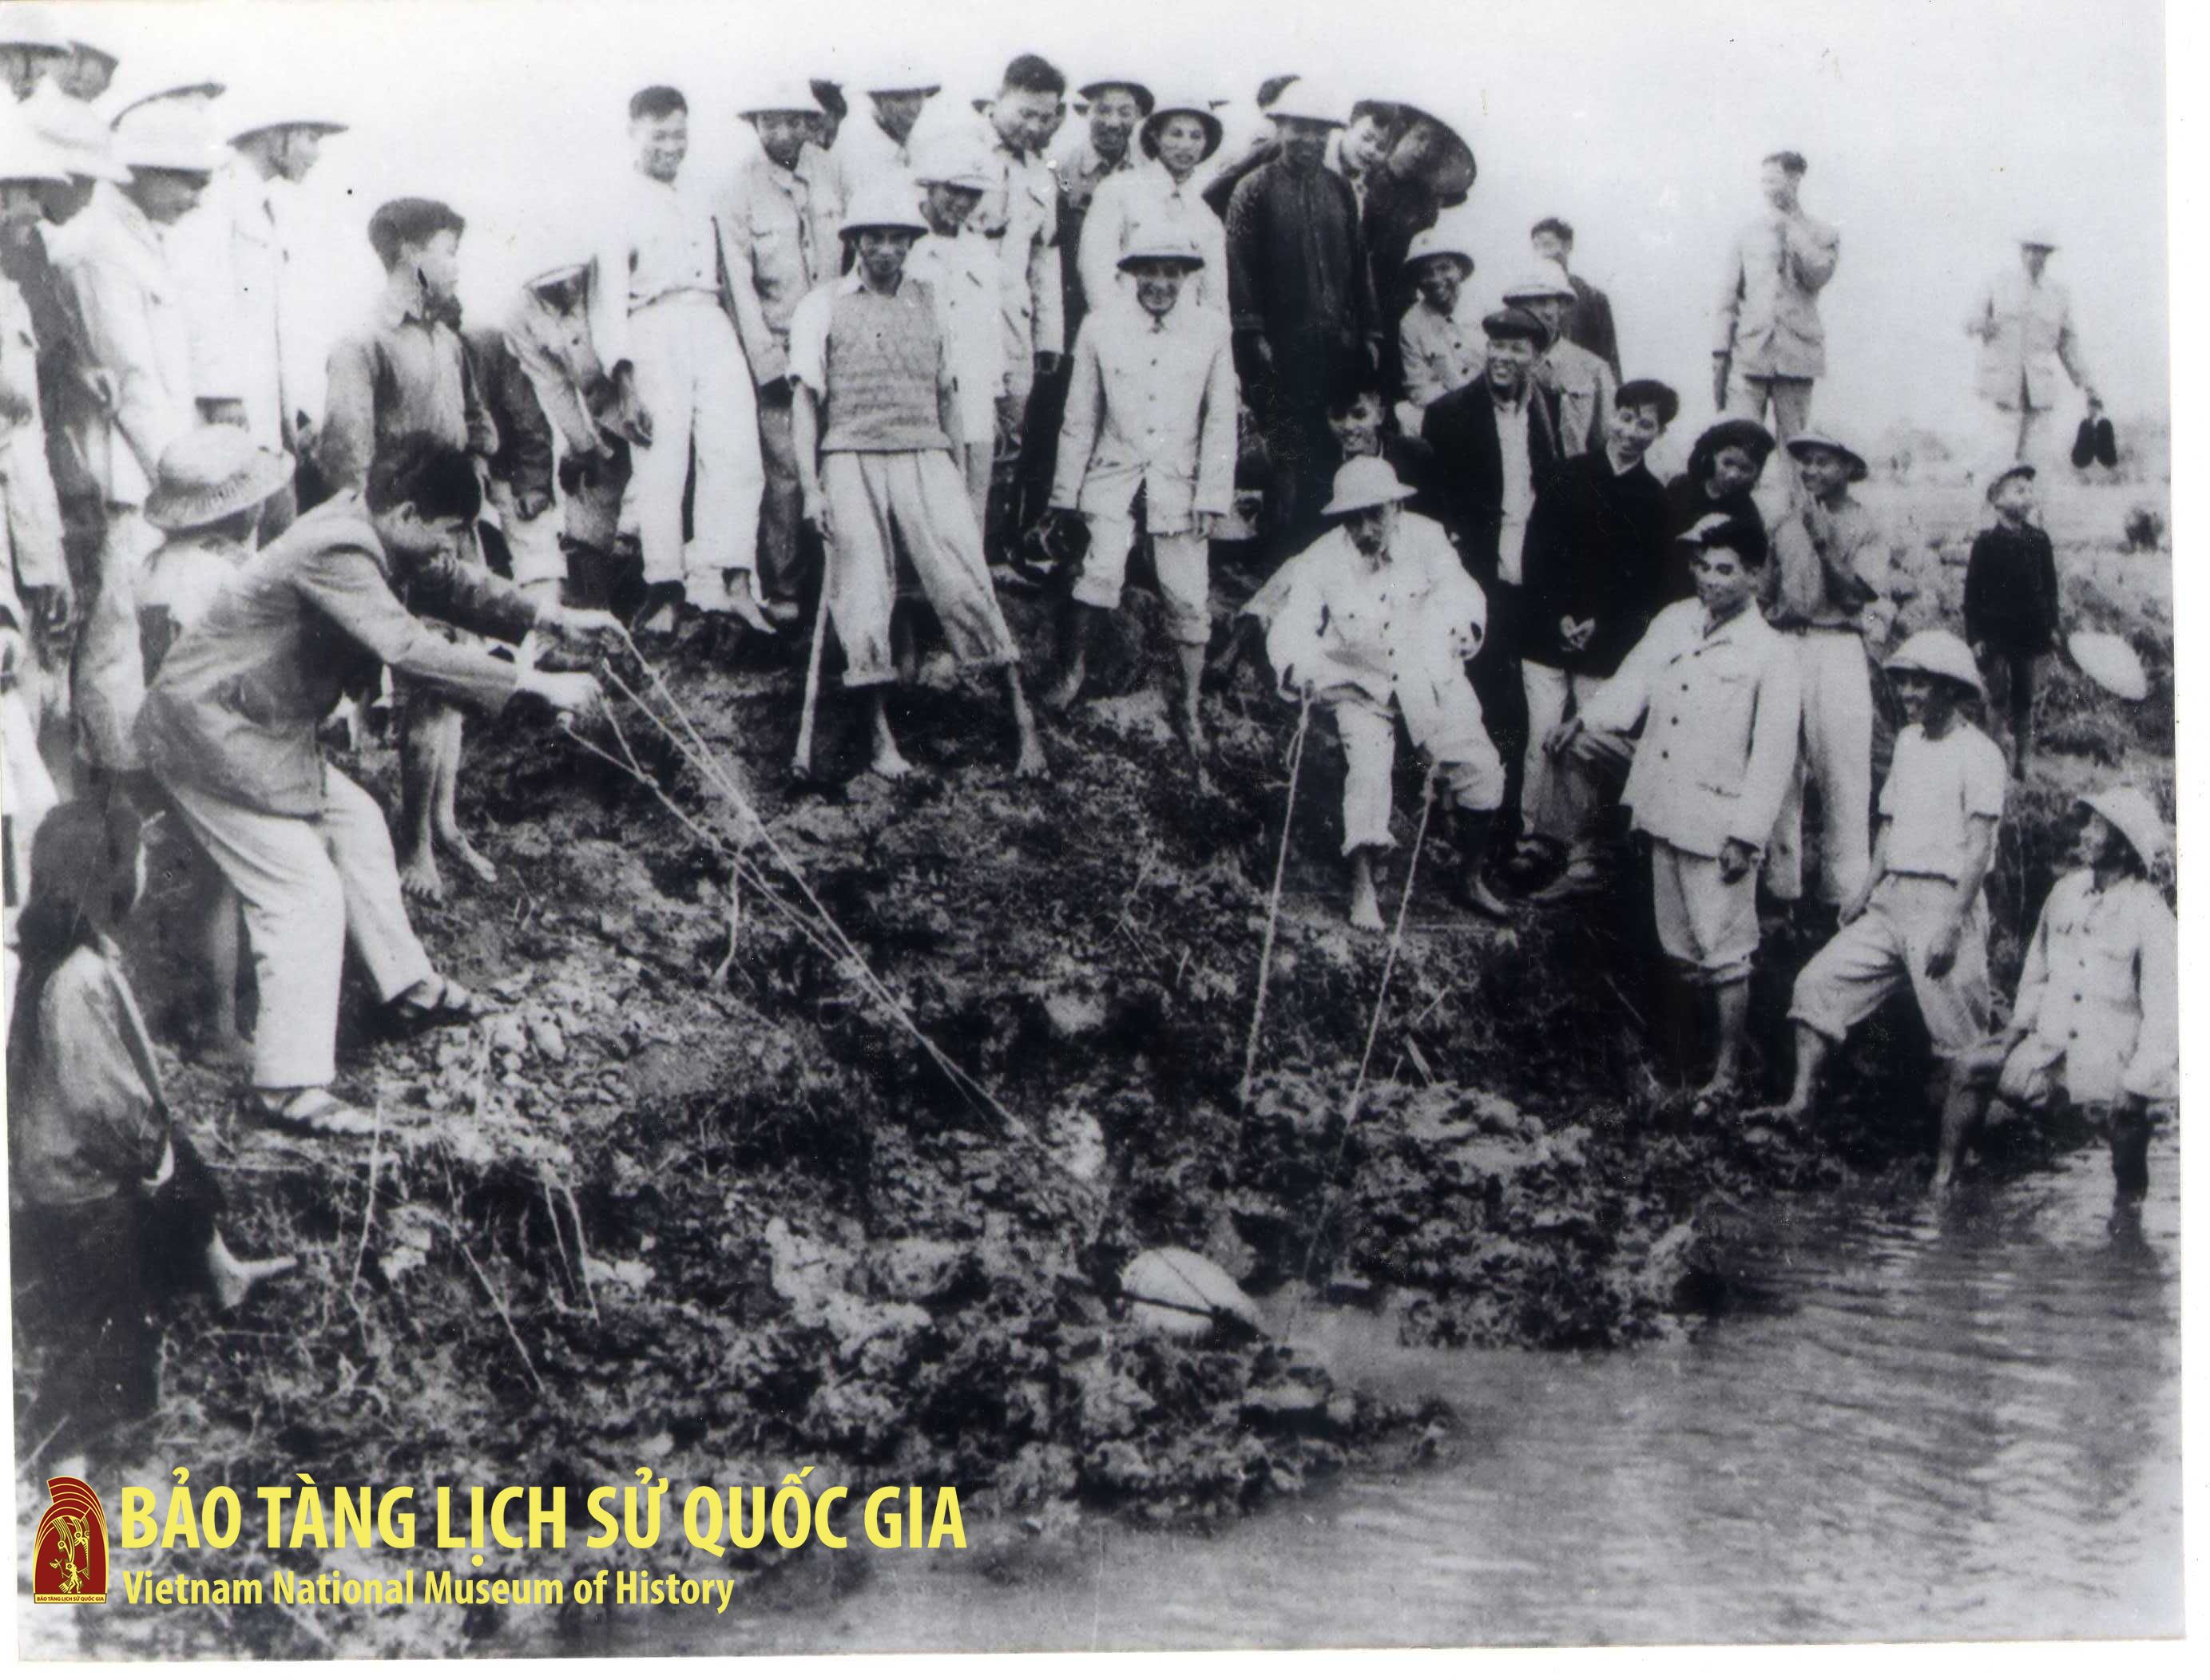 President Ho Chi Minh bailing flood water with farmers of Ta Thanh Oai village